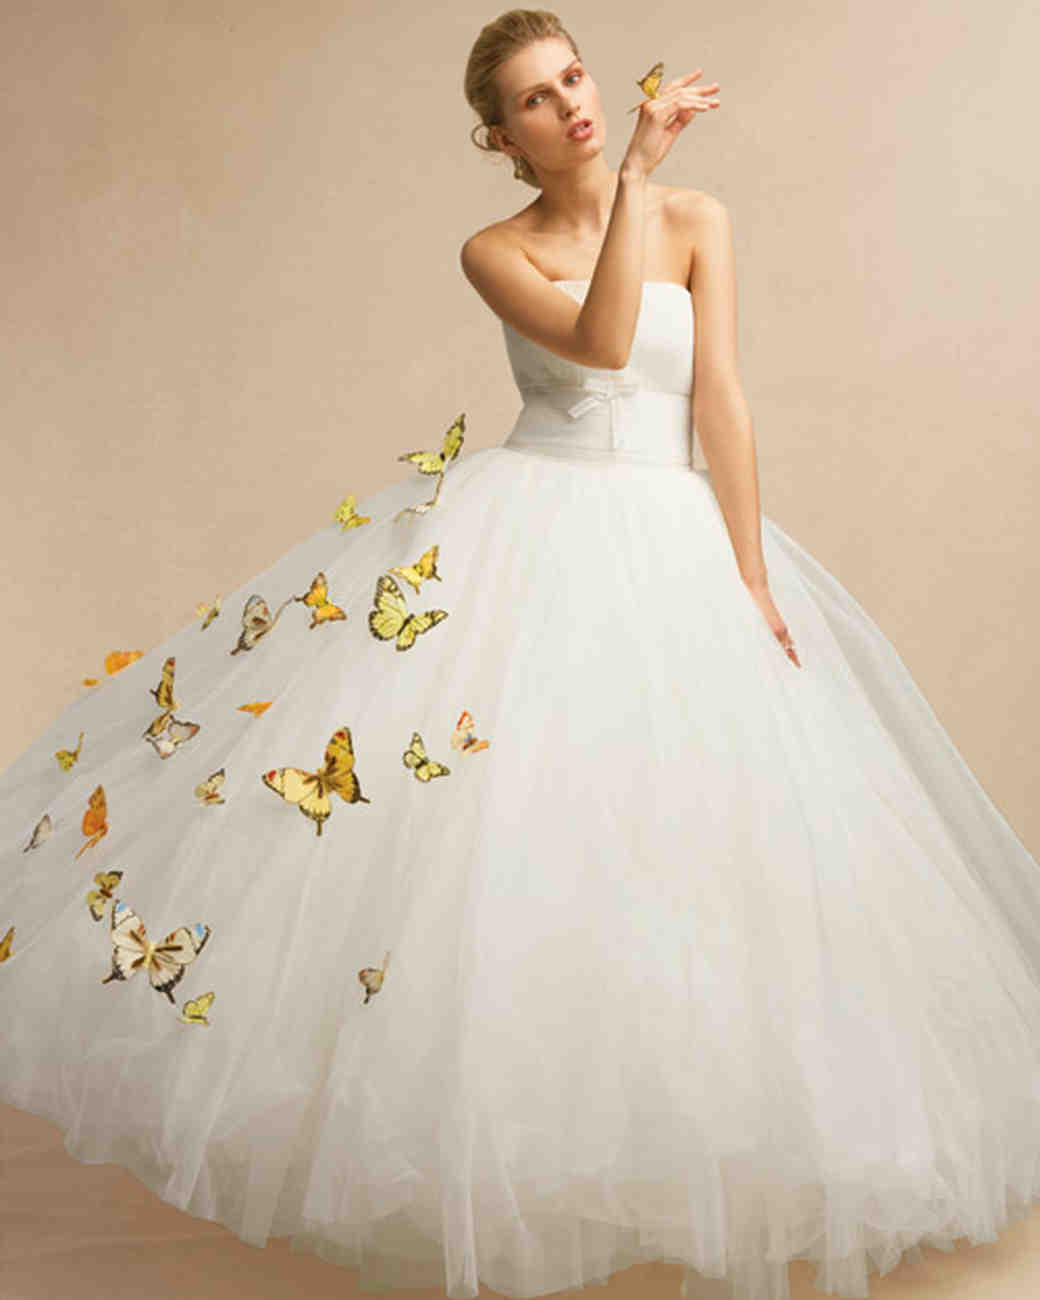 Wedding Dress Ideas: Butterfly-Inspired Wedding Ideas